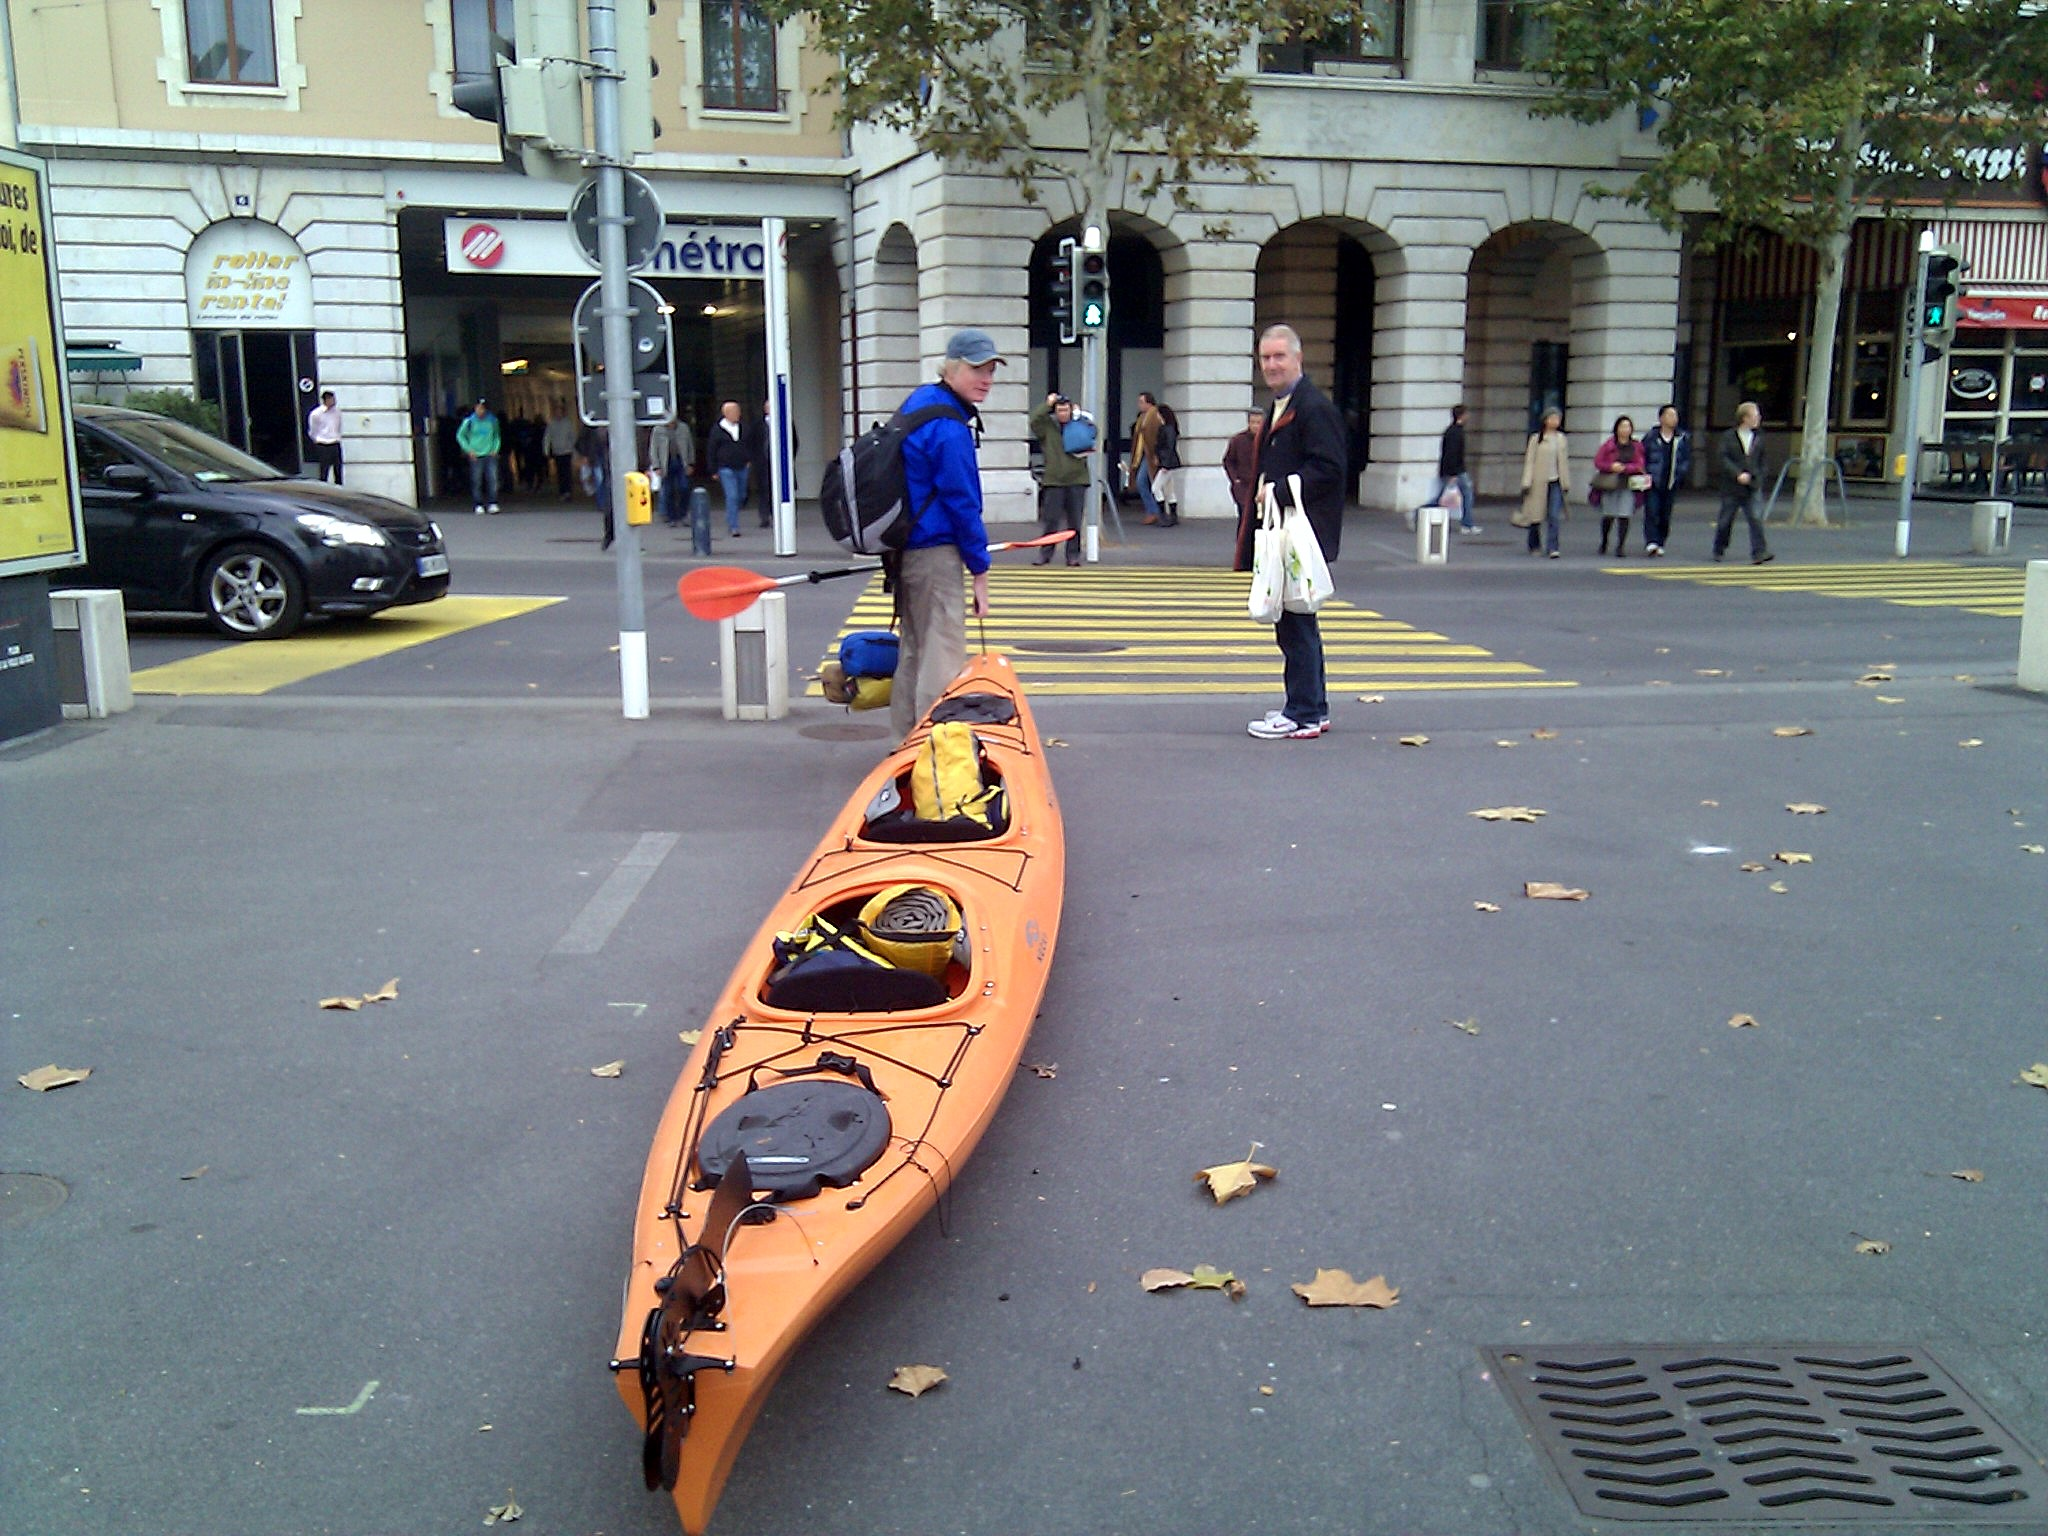 Jay Sherrerd carrying our kayak into the storage space at the Aulac Hotel, where I am staying until Monday morning.